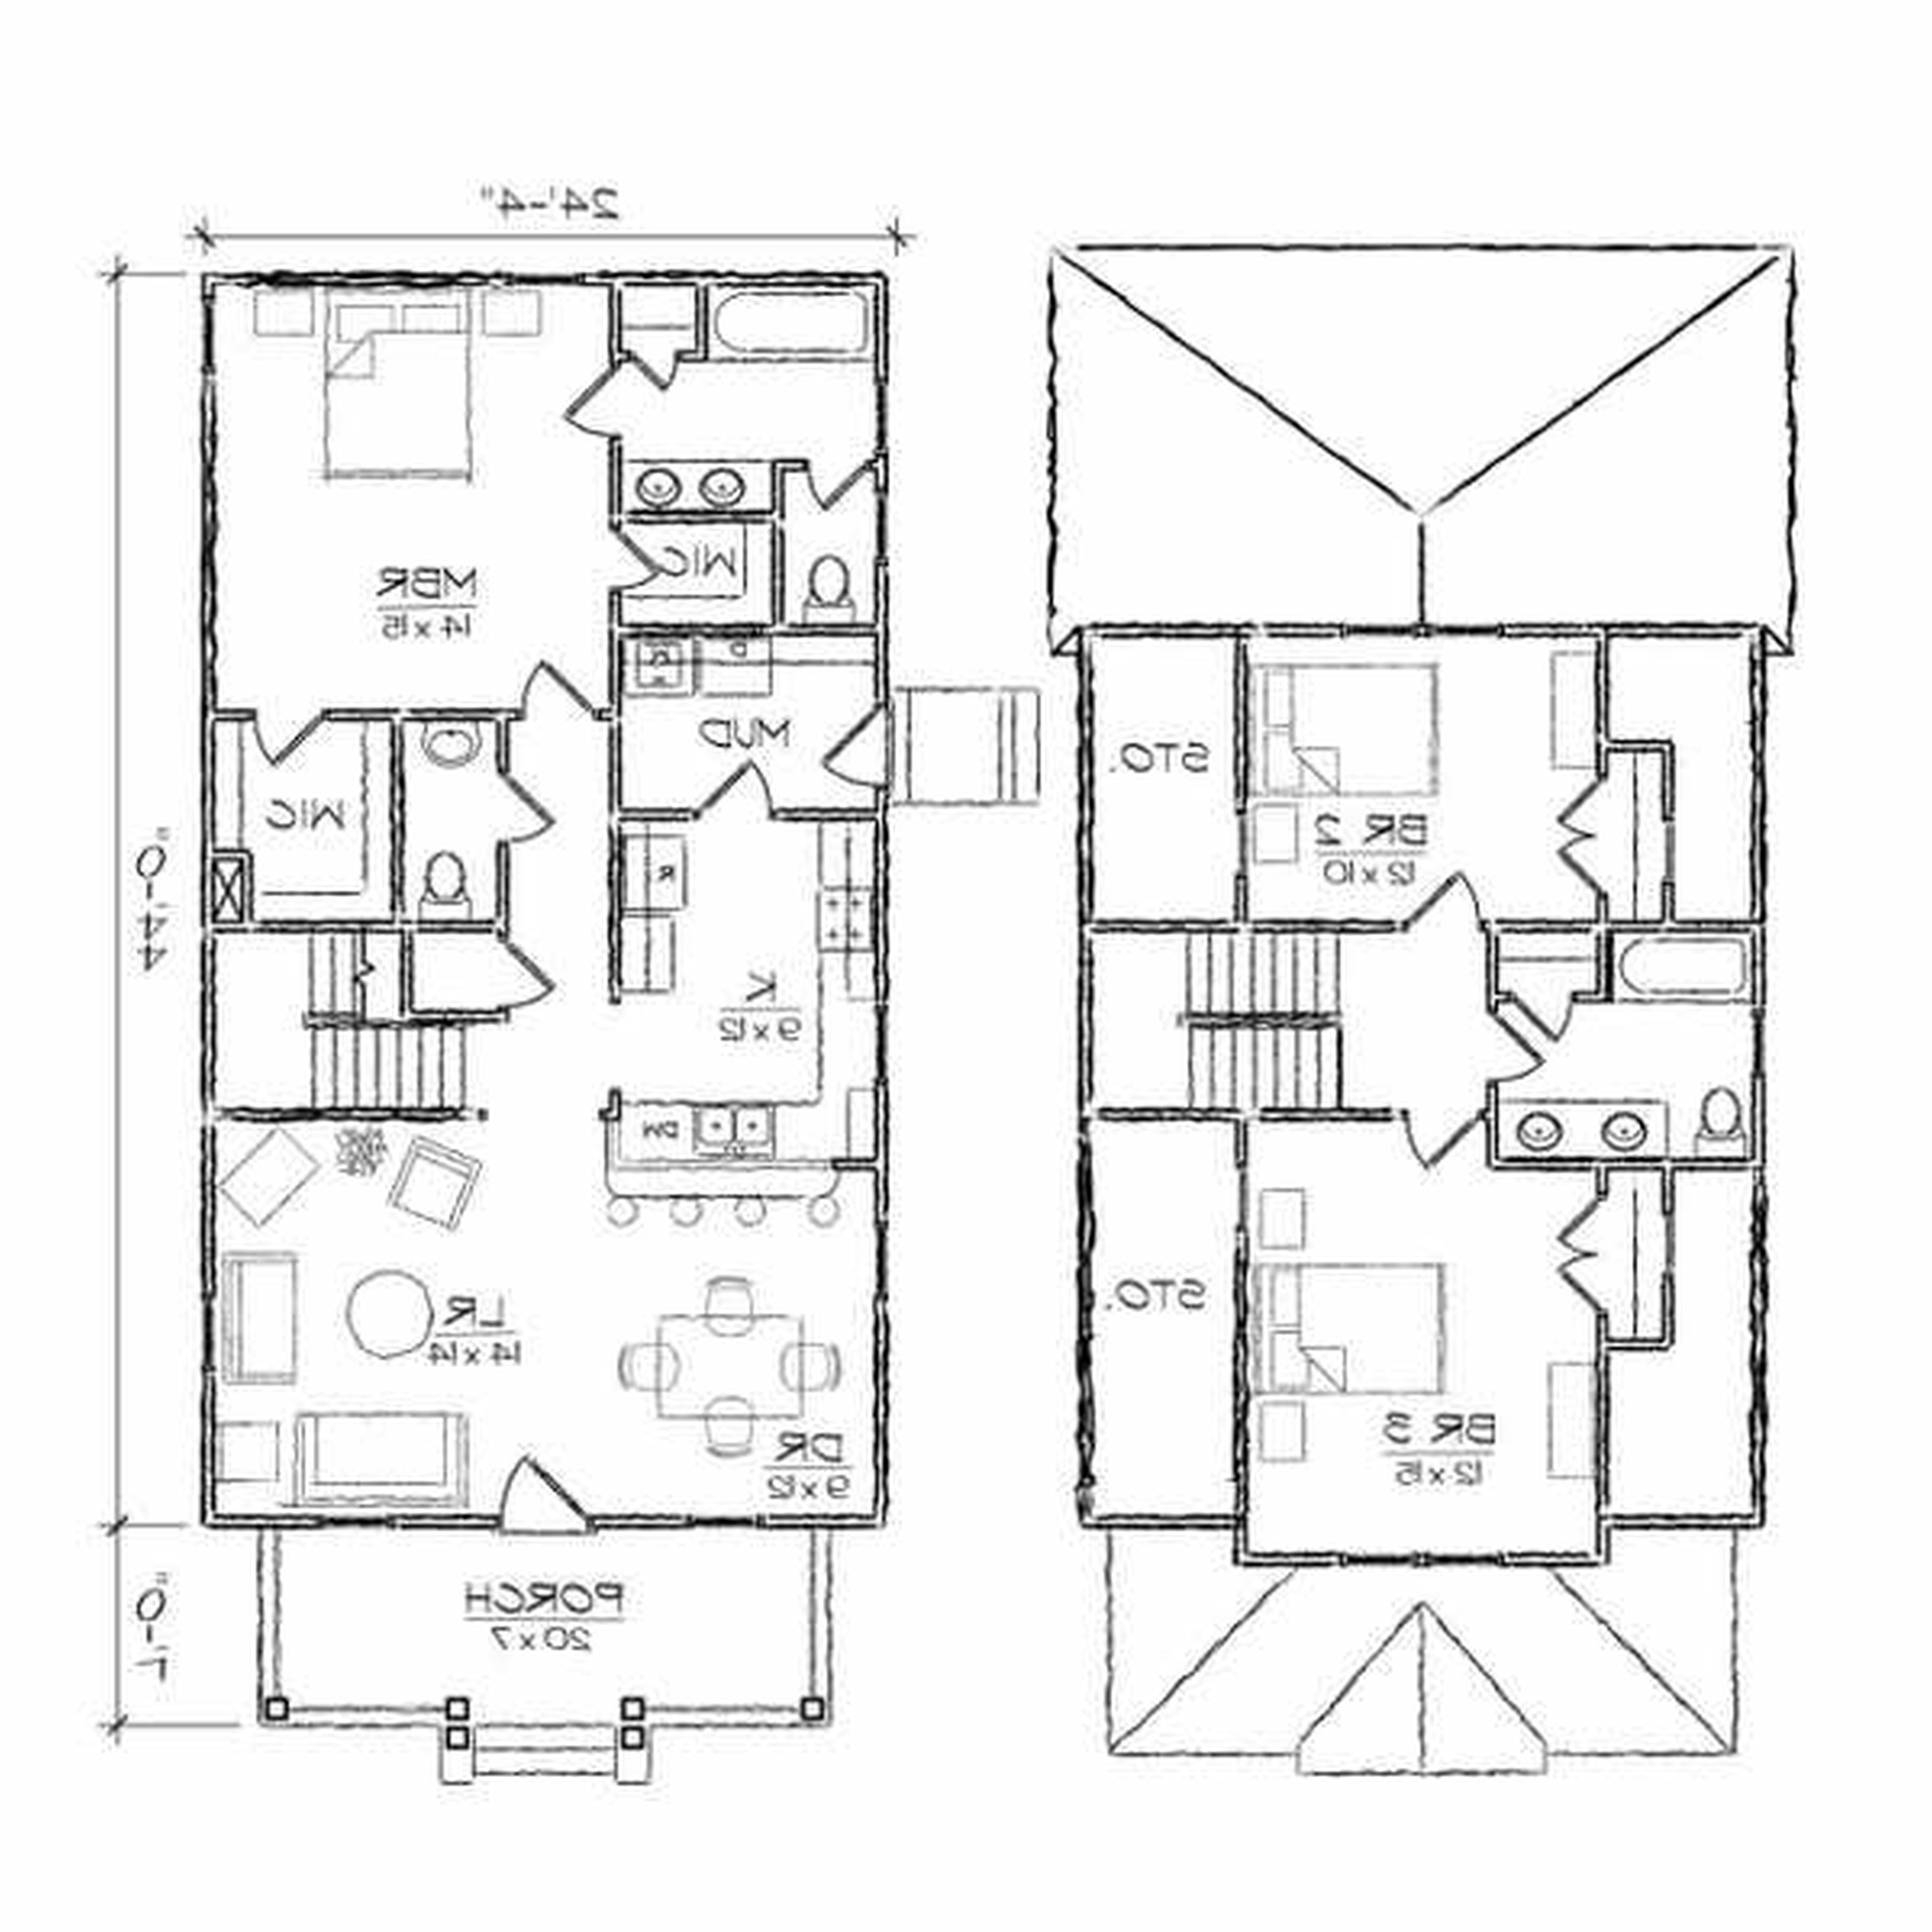 Home Drawing at GetDrawings.com | Free for personal use Home Drawing ...